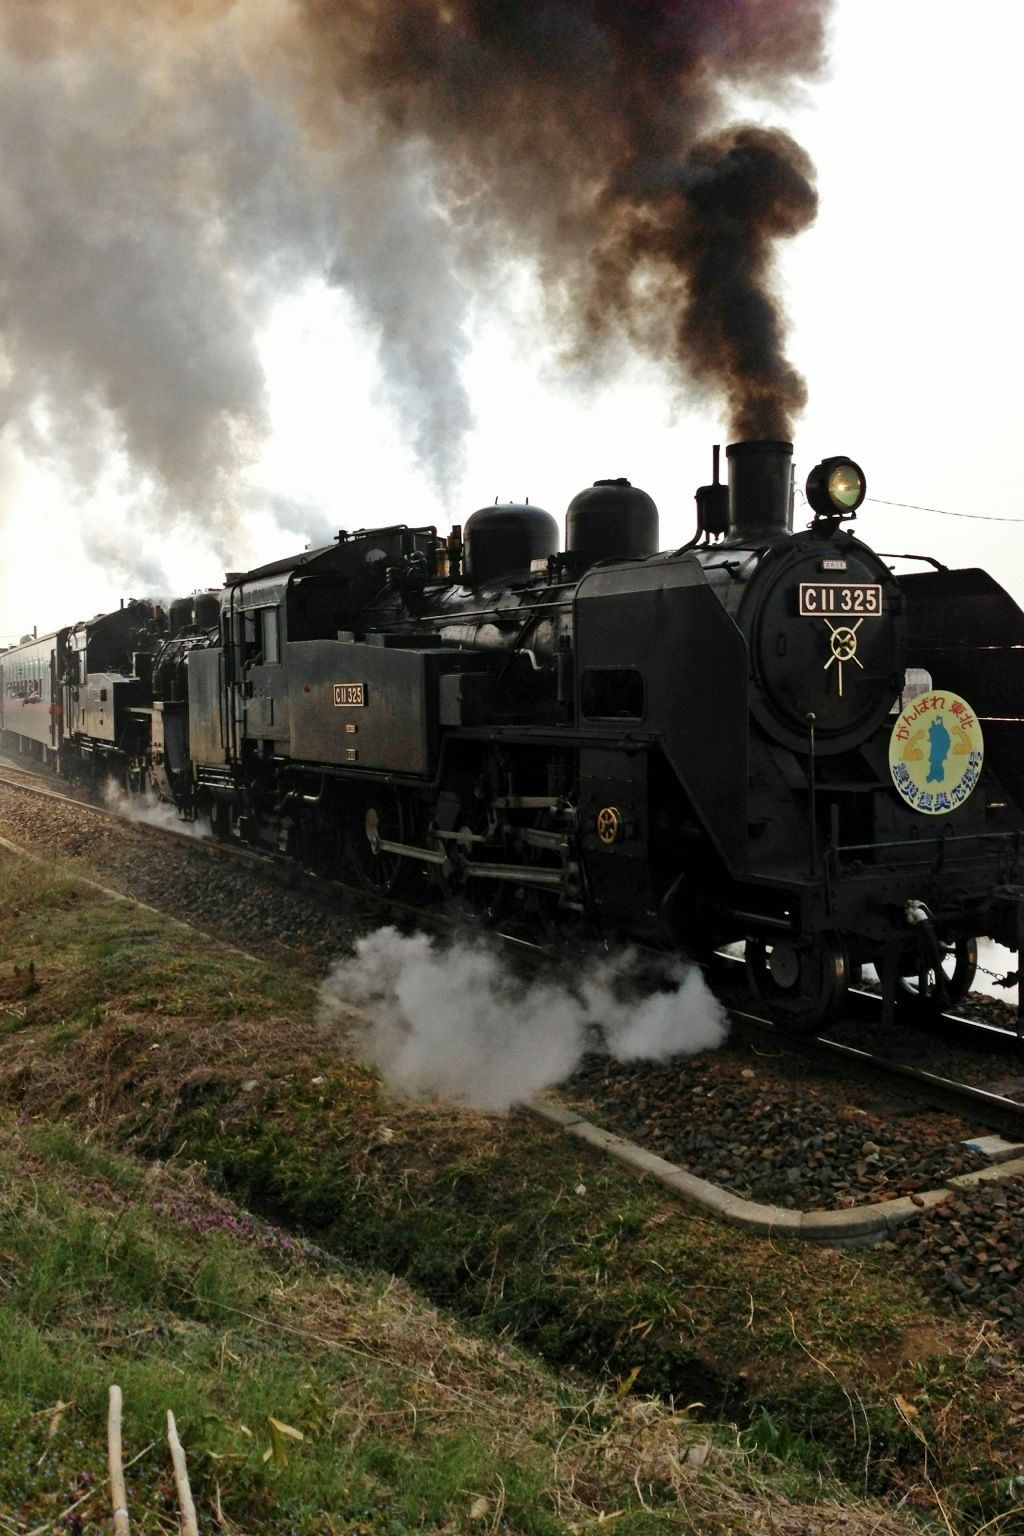 Pin by 奕儒 吳 on 日本鉄道 (With images) Steam